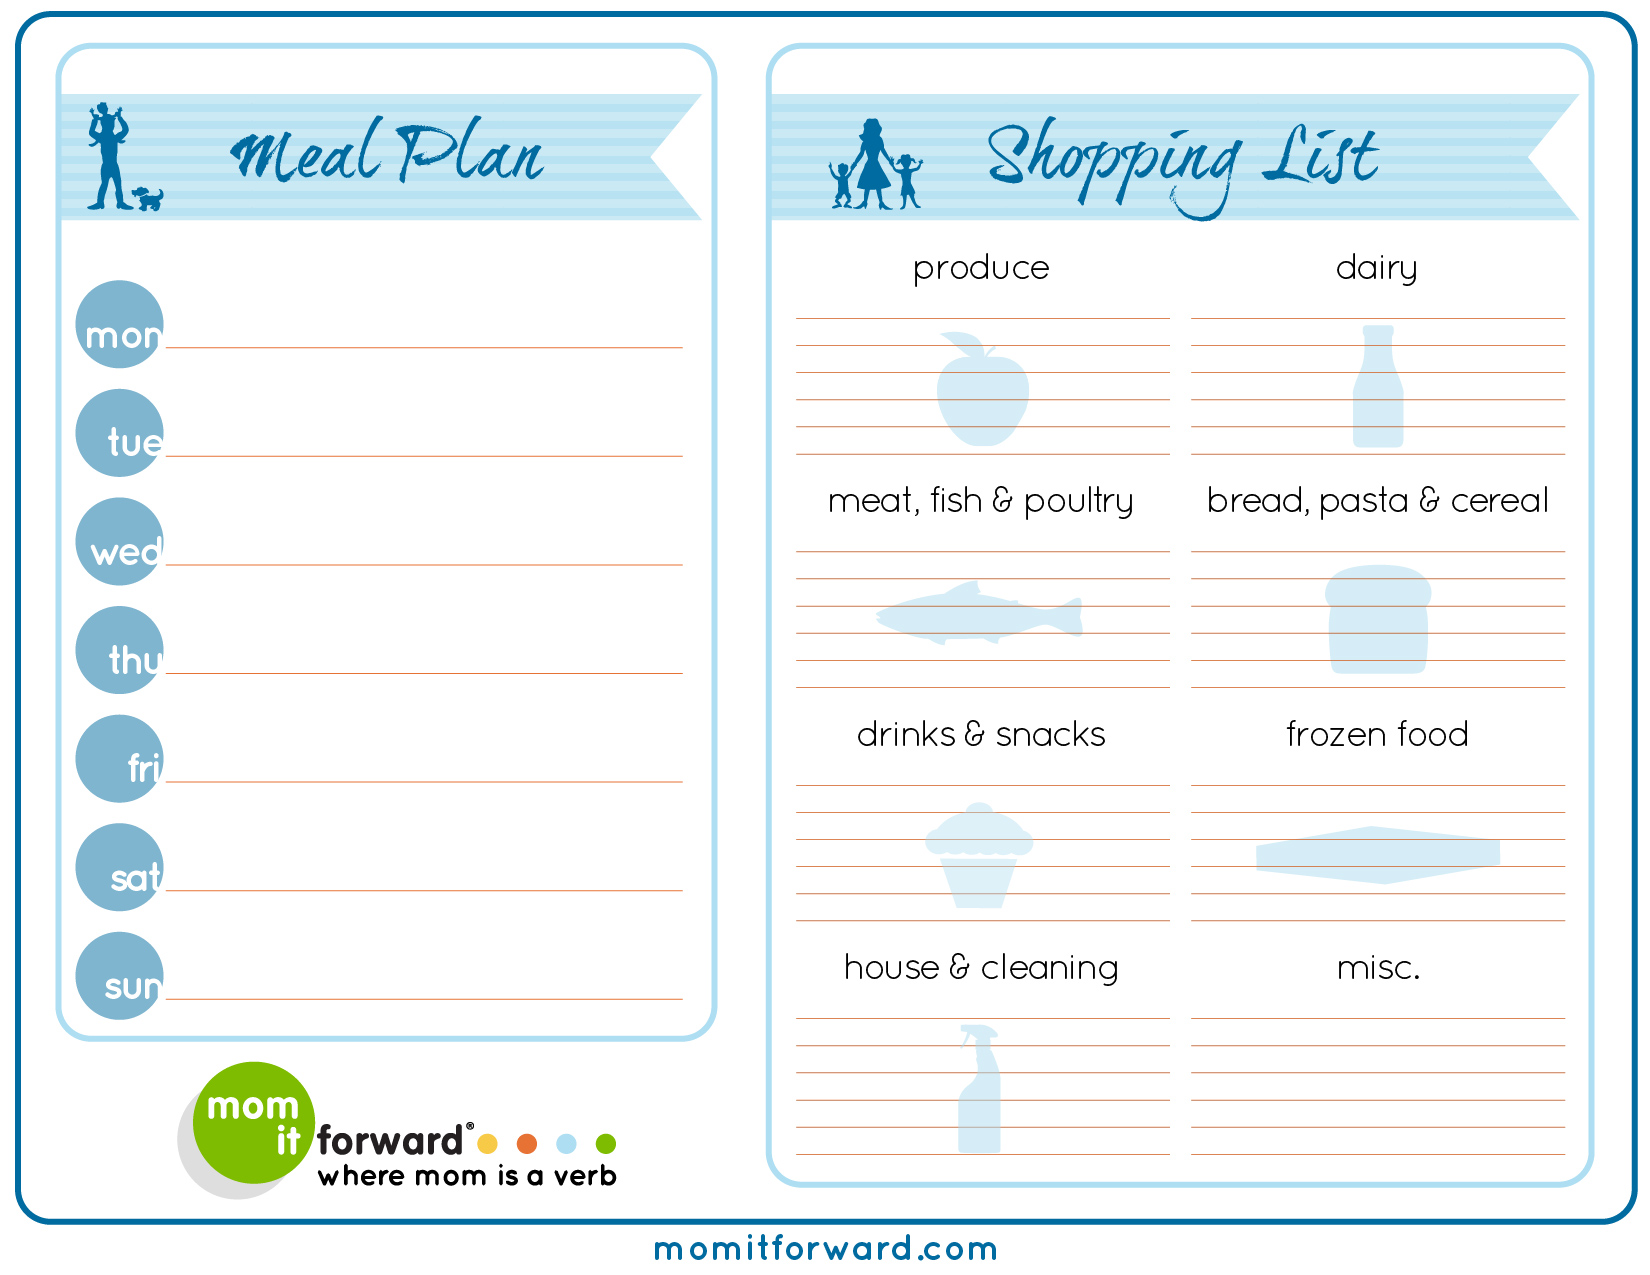 Meal Plan Worksheet Printable